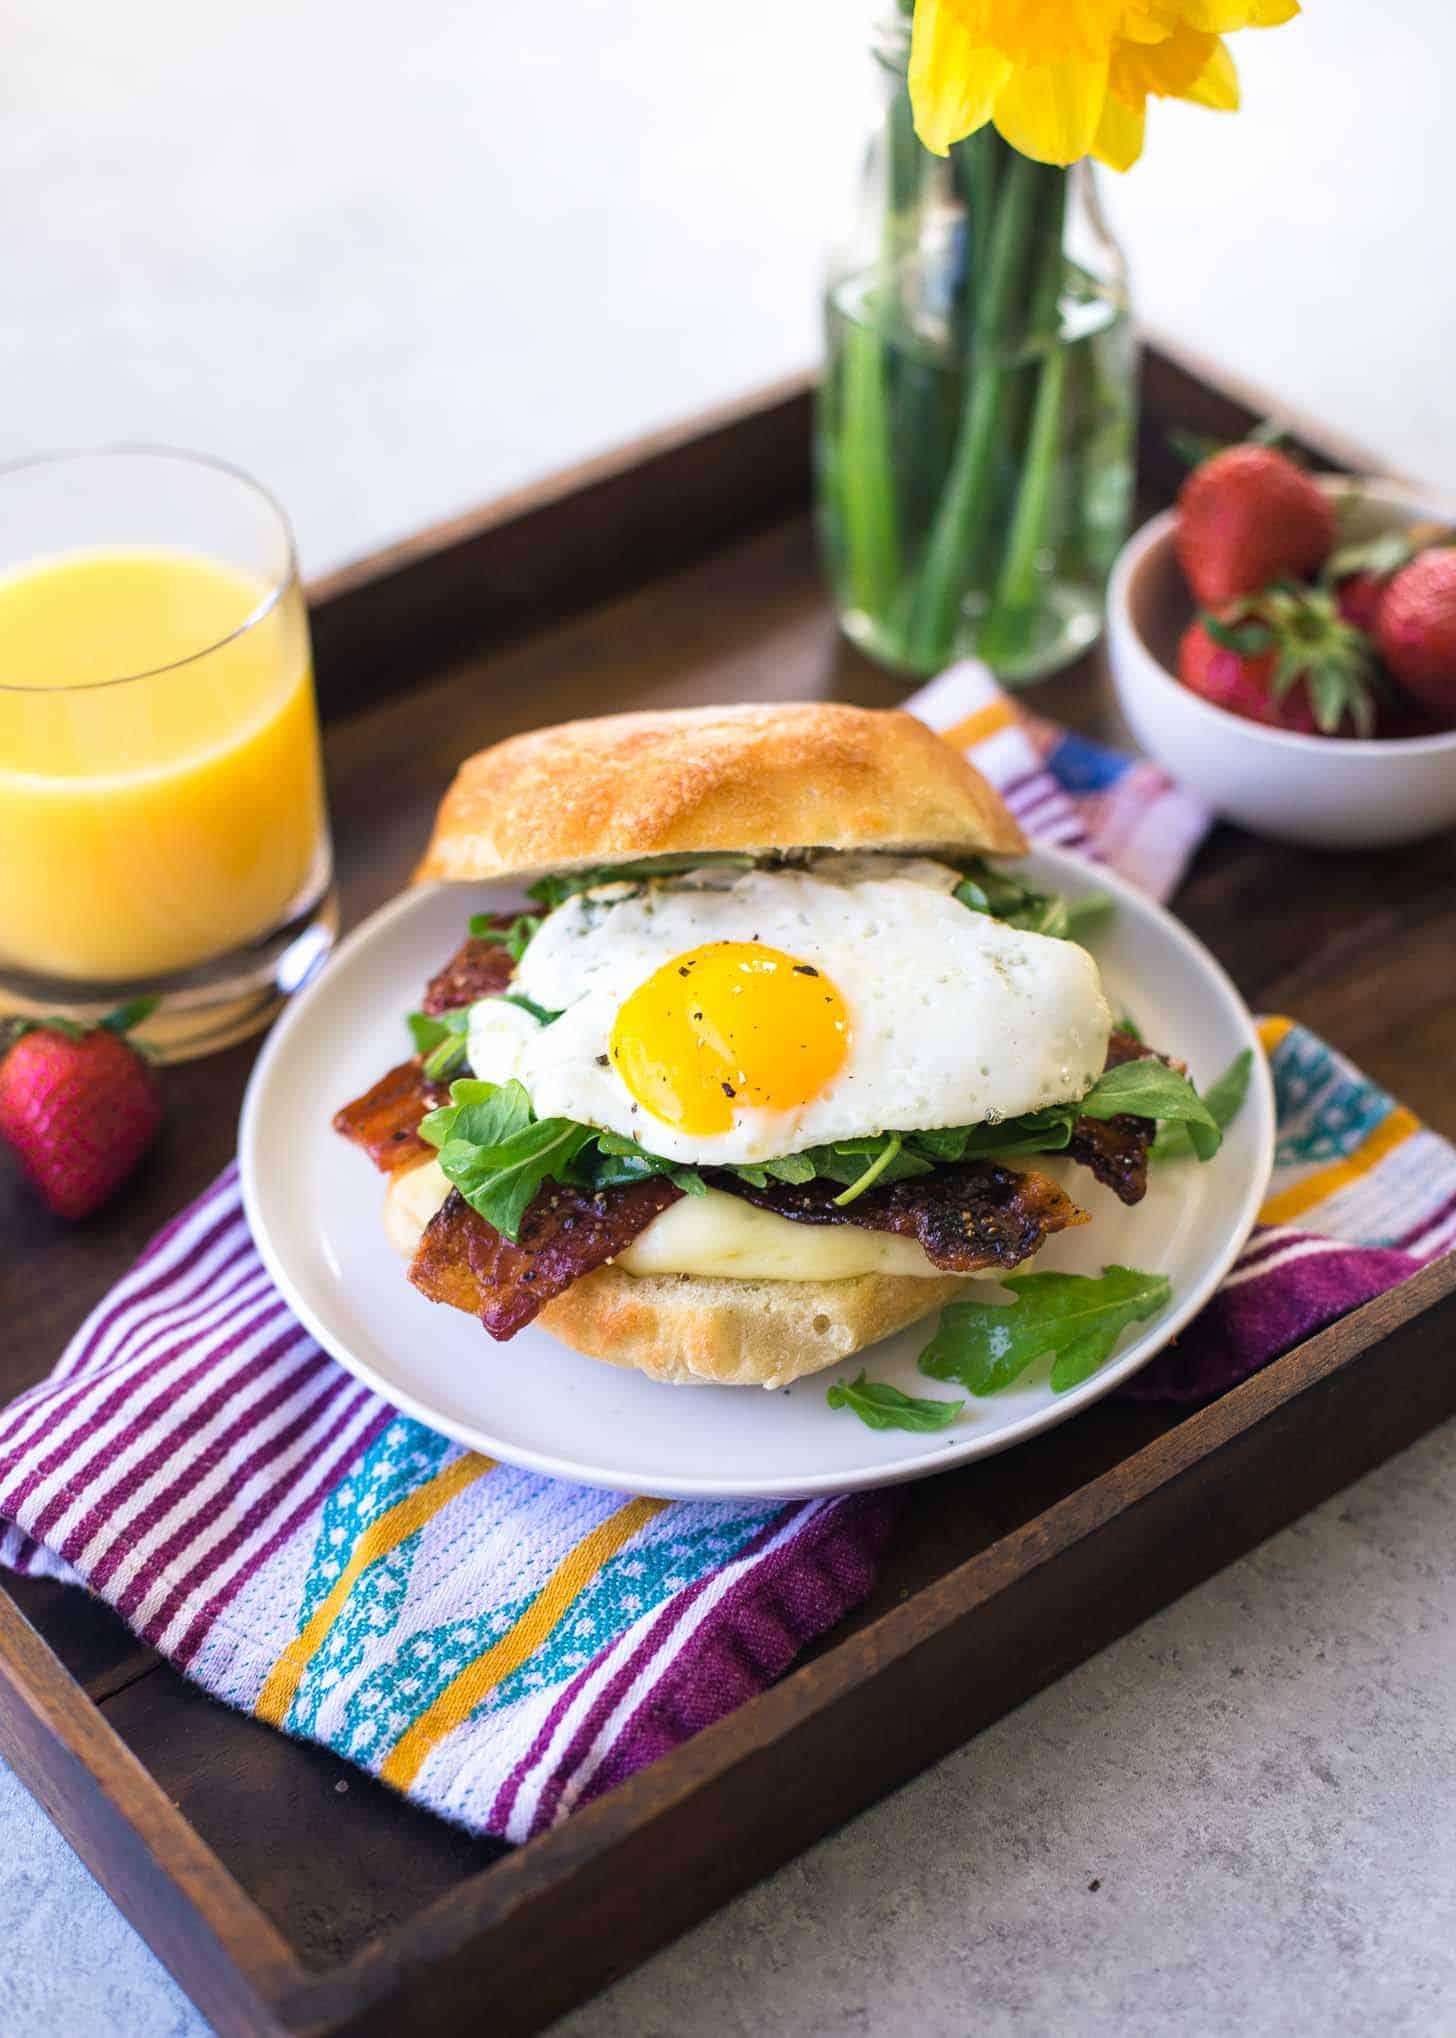 Bacon, Egg, Brie and Arugula Breakfast Sandwich